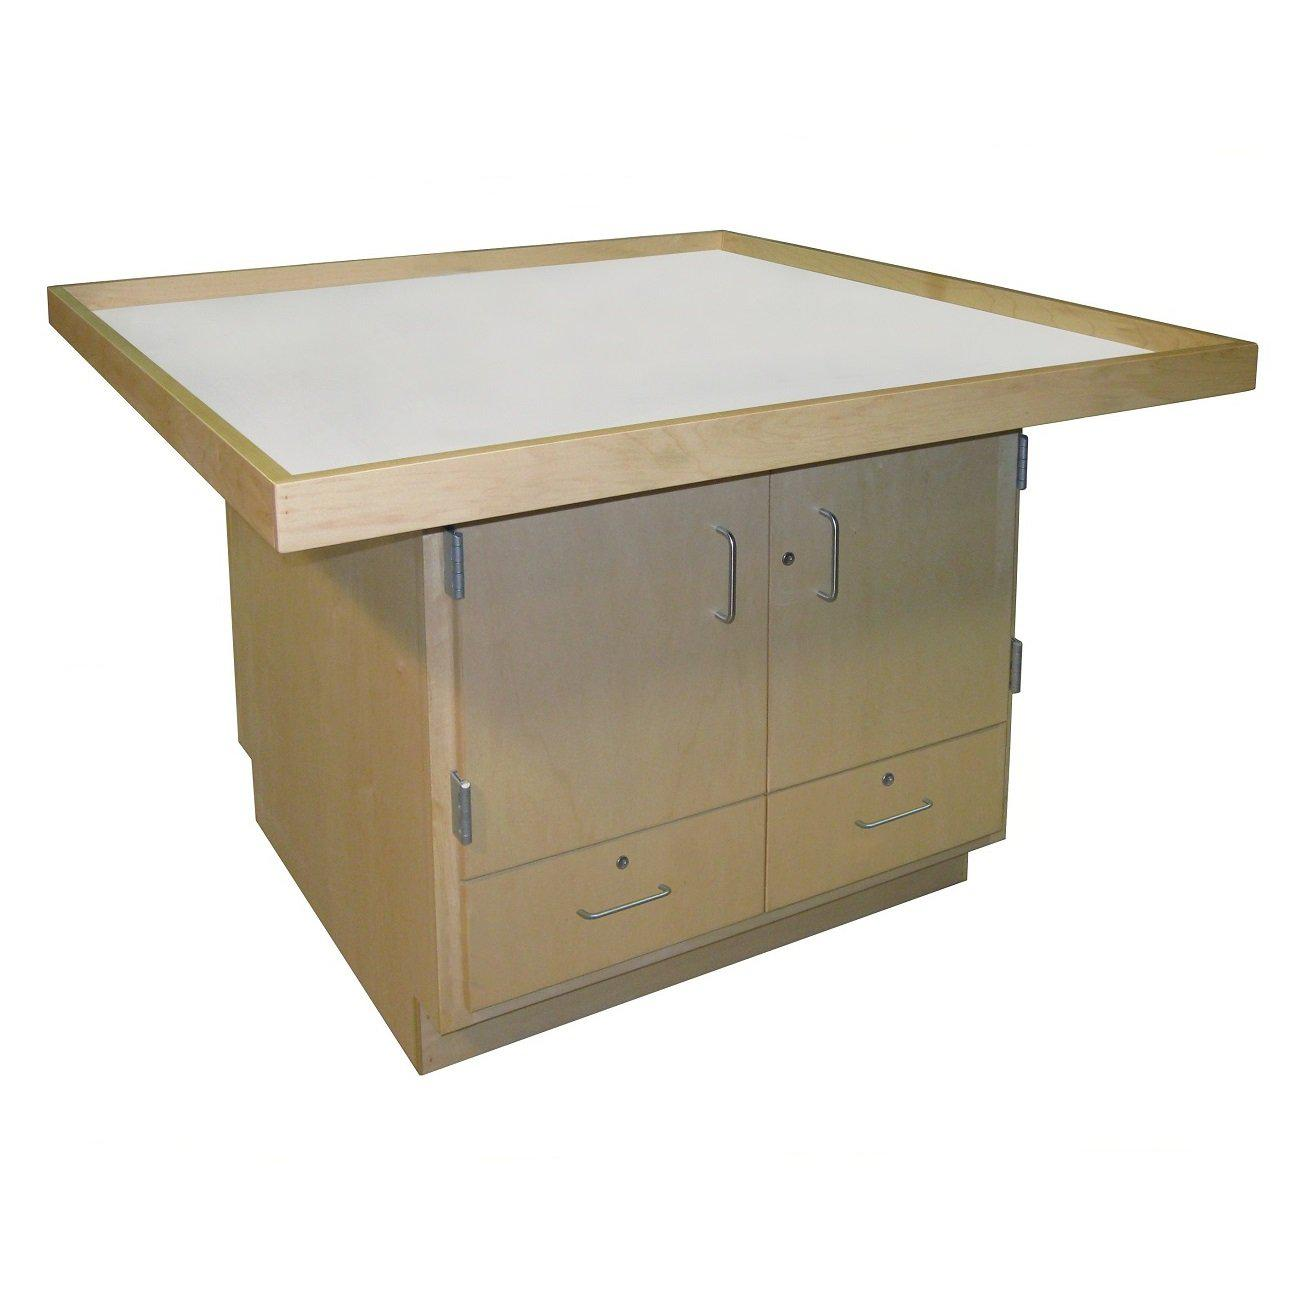 "STEM Robotics Workstation, Doors Over Drawers, 48"" x 60"" Lipped Top, 32"" High"